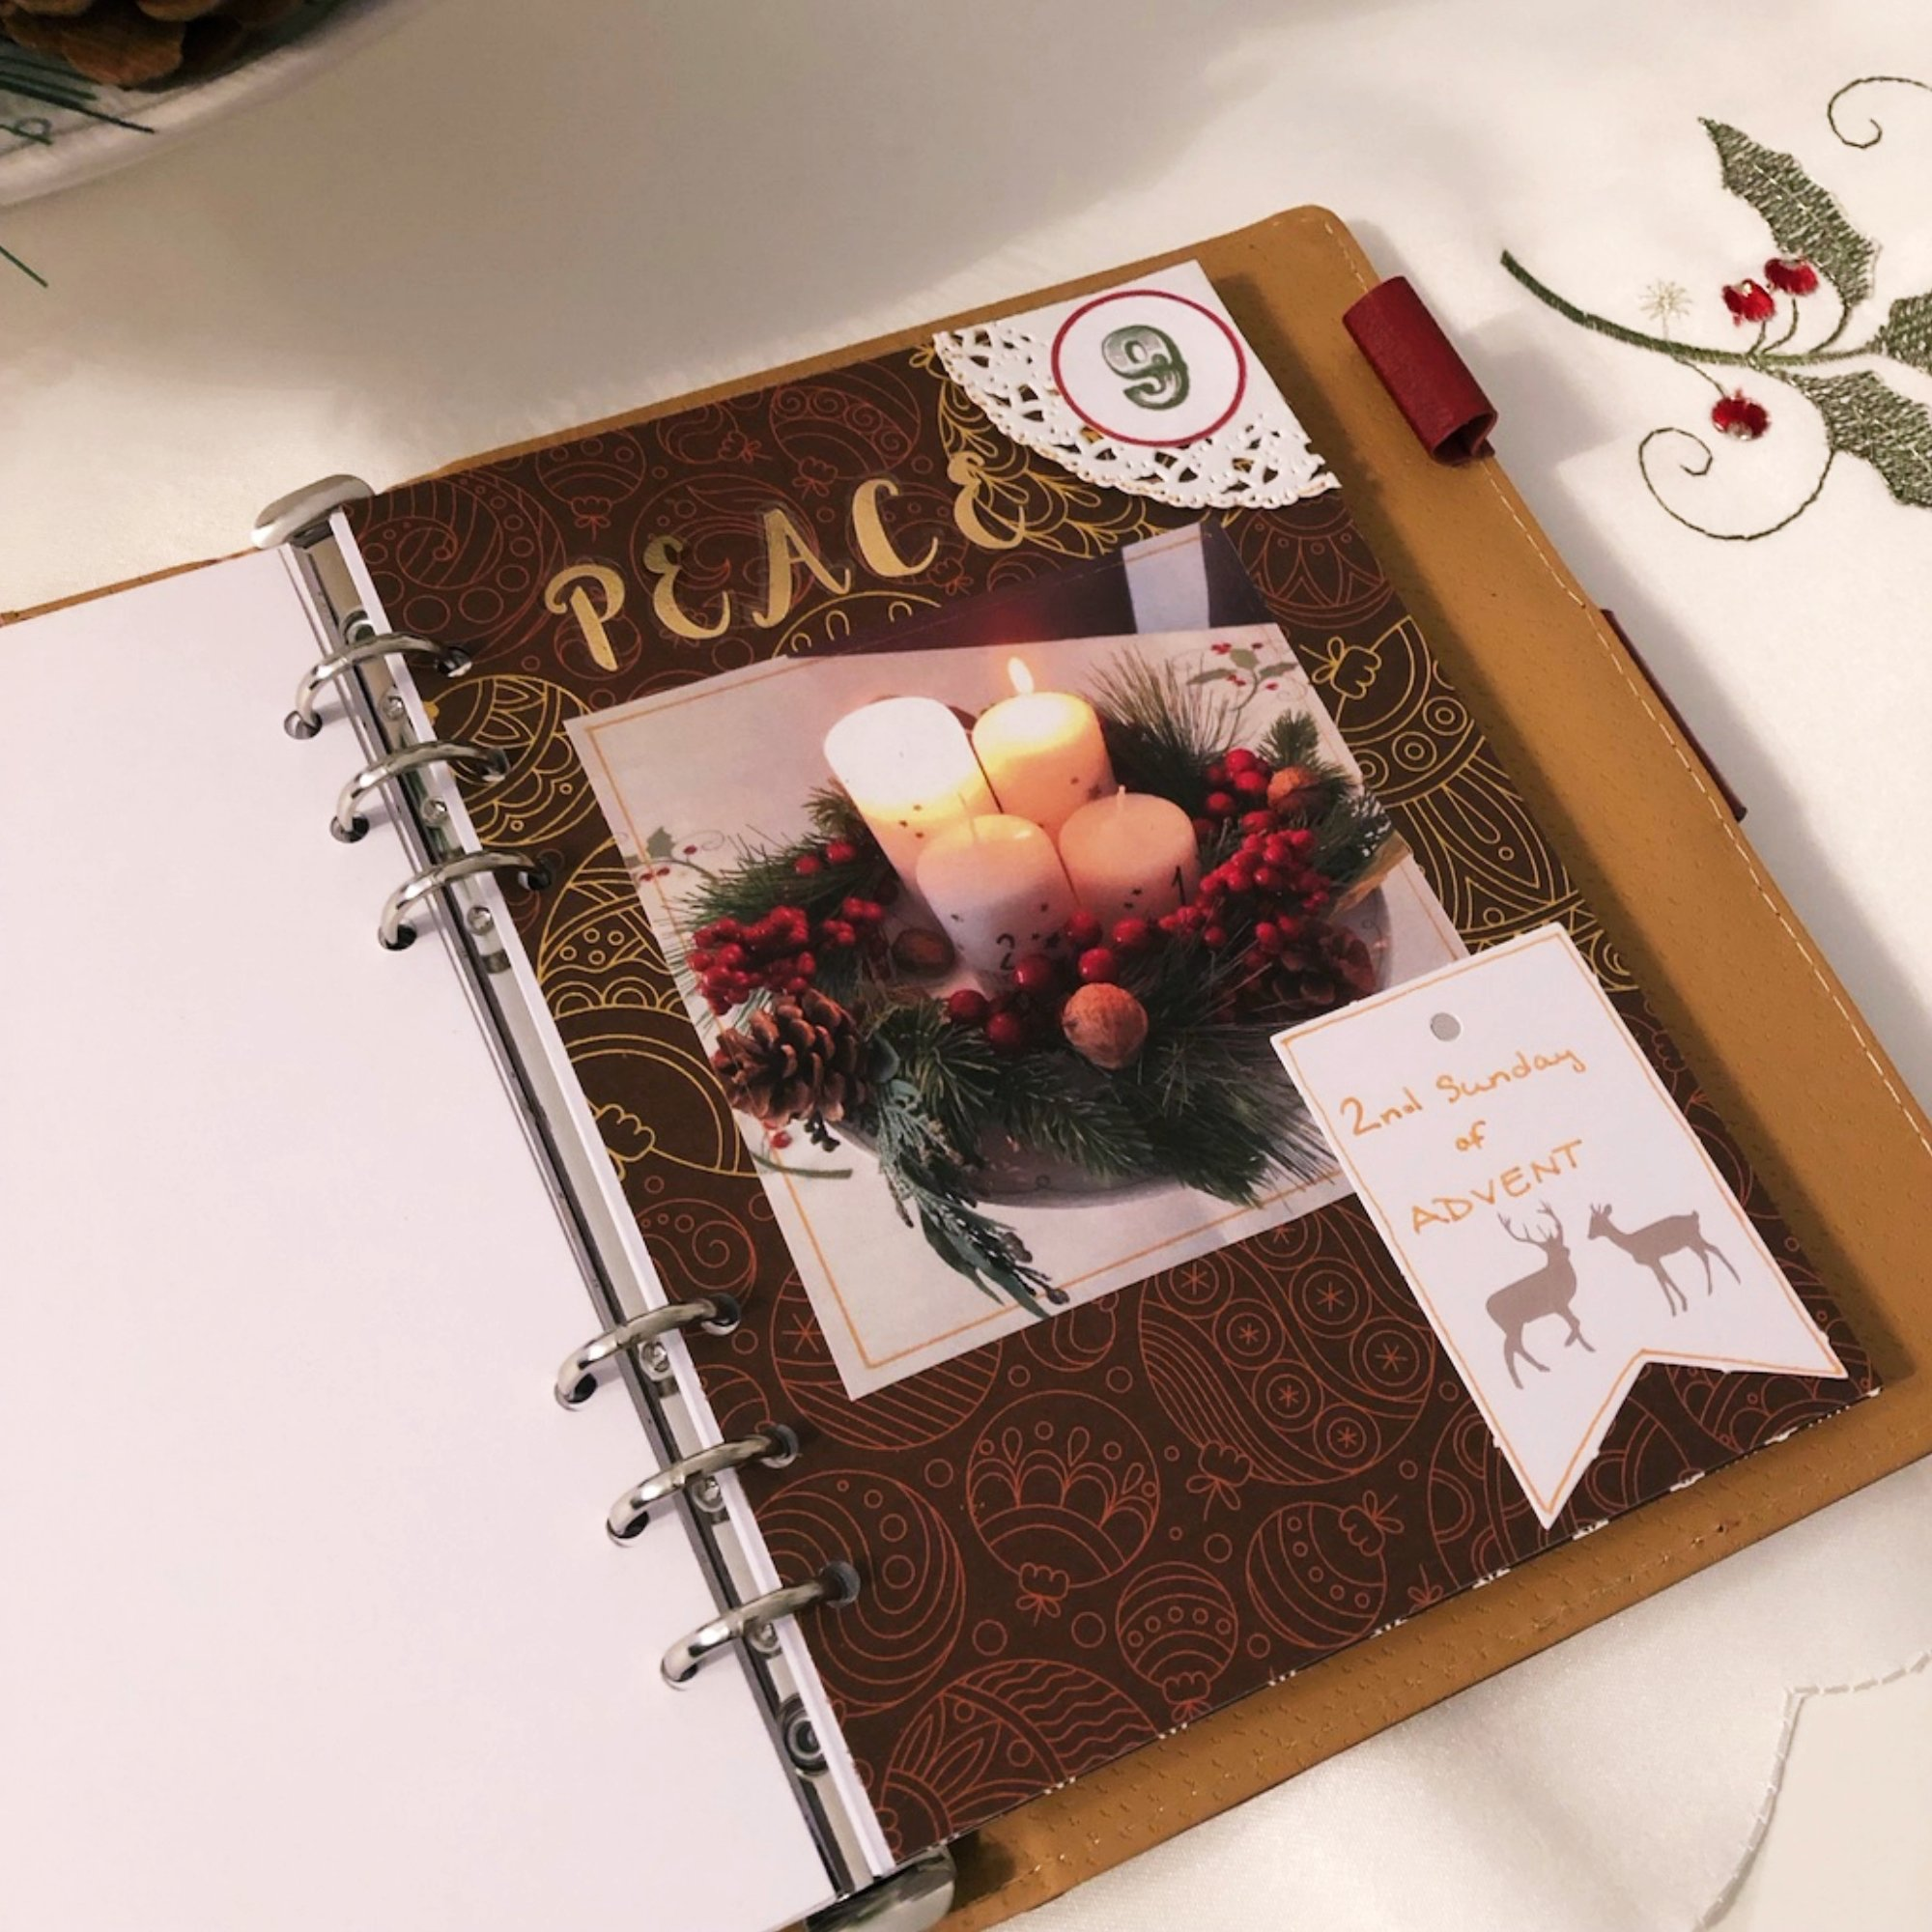 Creative journaling - December daily memories Day 9 - itstartswithacoffee.com #creativejournaling #journaling #daily